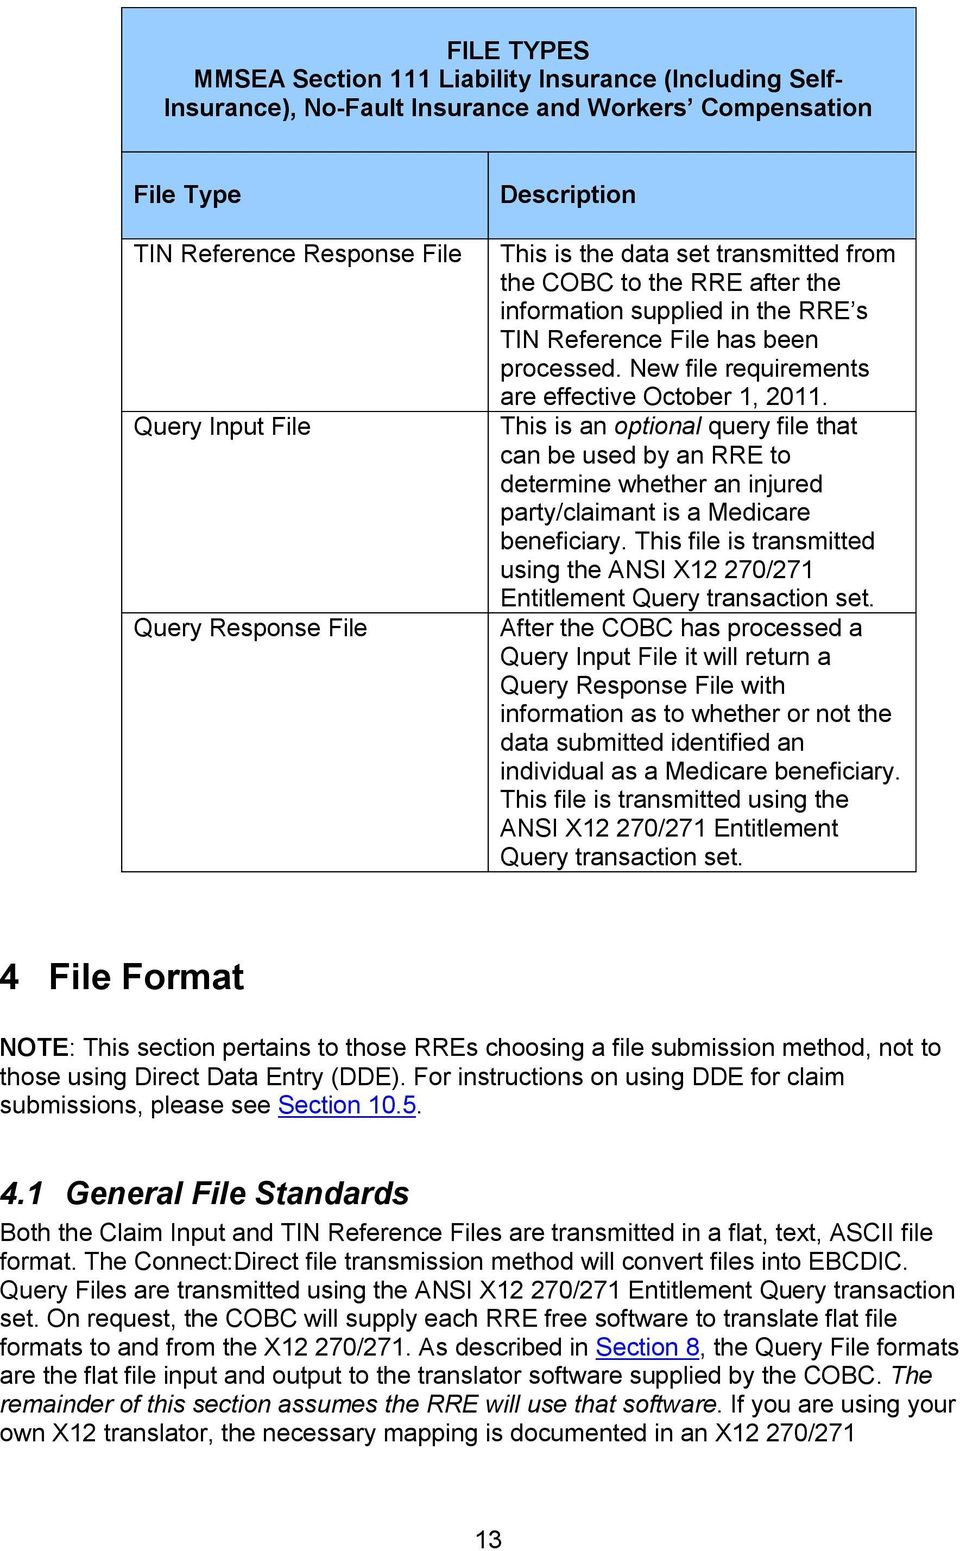 New file requirements are effective October 1, 2011. This is an optional query file that can be used by an RRE to determine whether an injured party/claimant is a Medicare beneficiary.